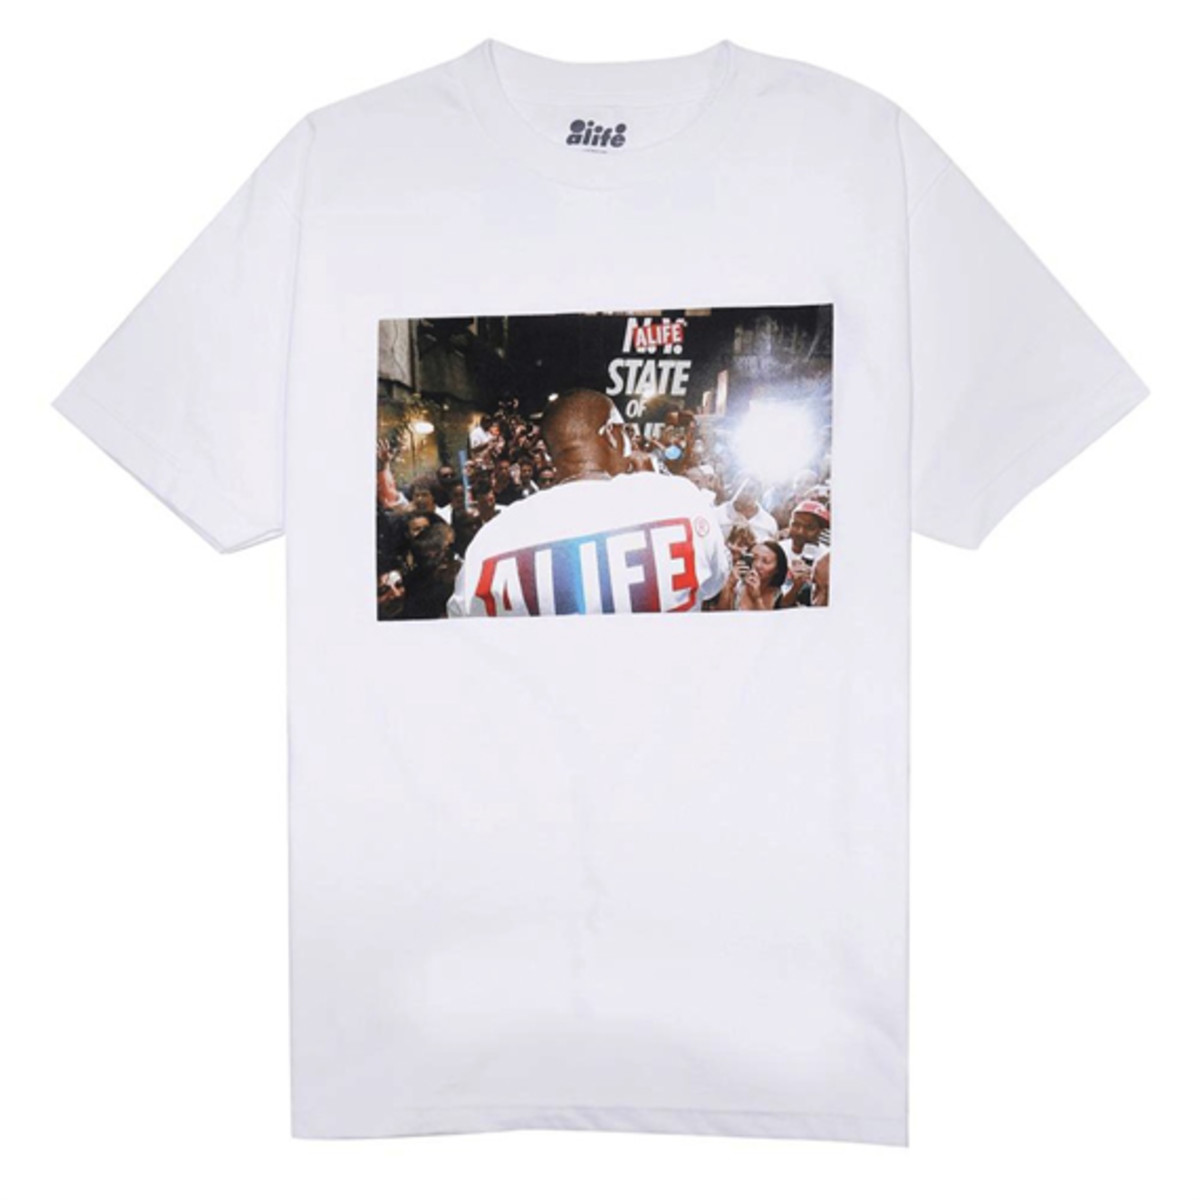 alife-tshirts-october-2013-releases-02